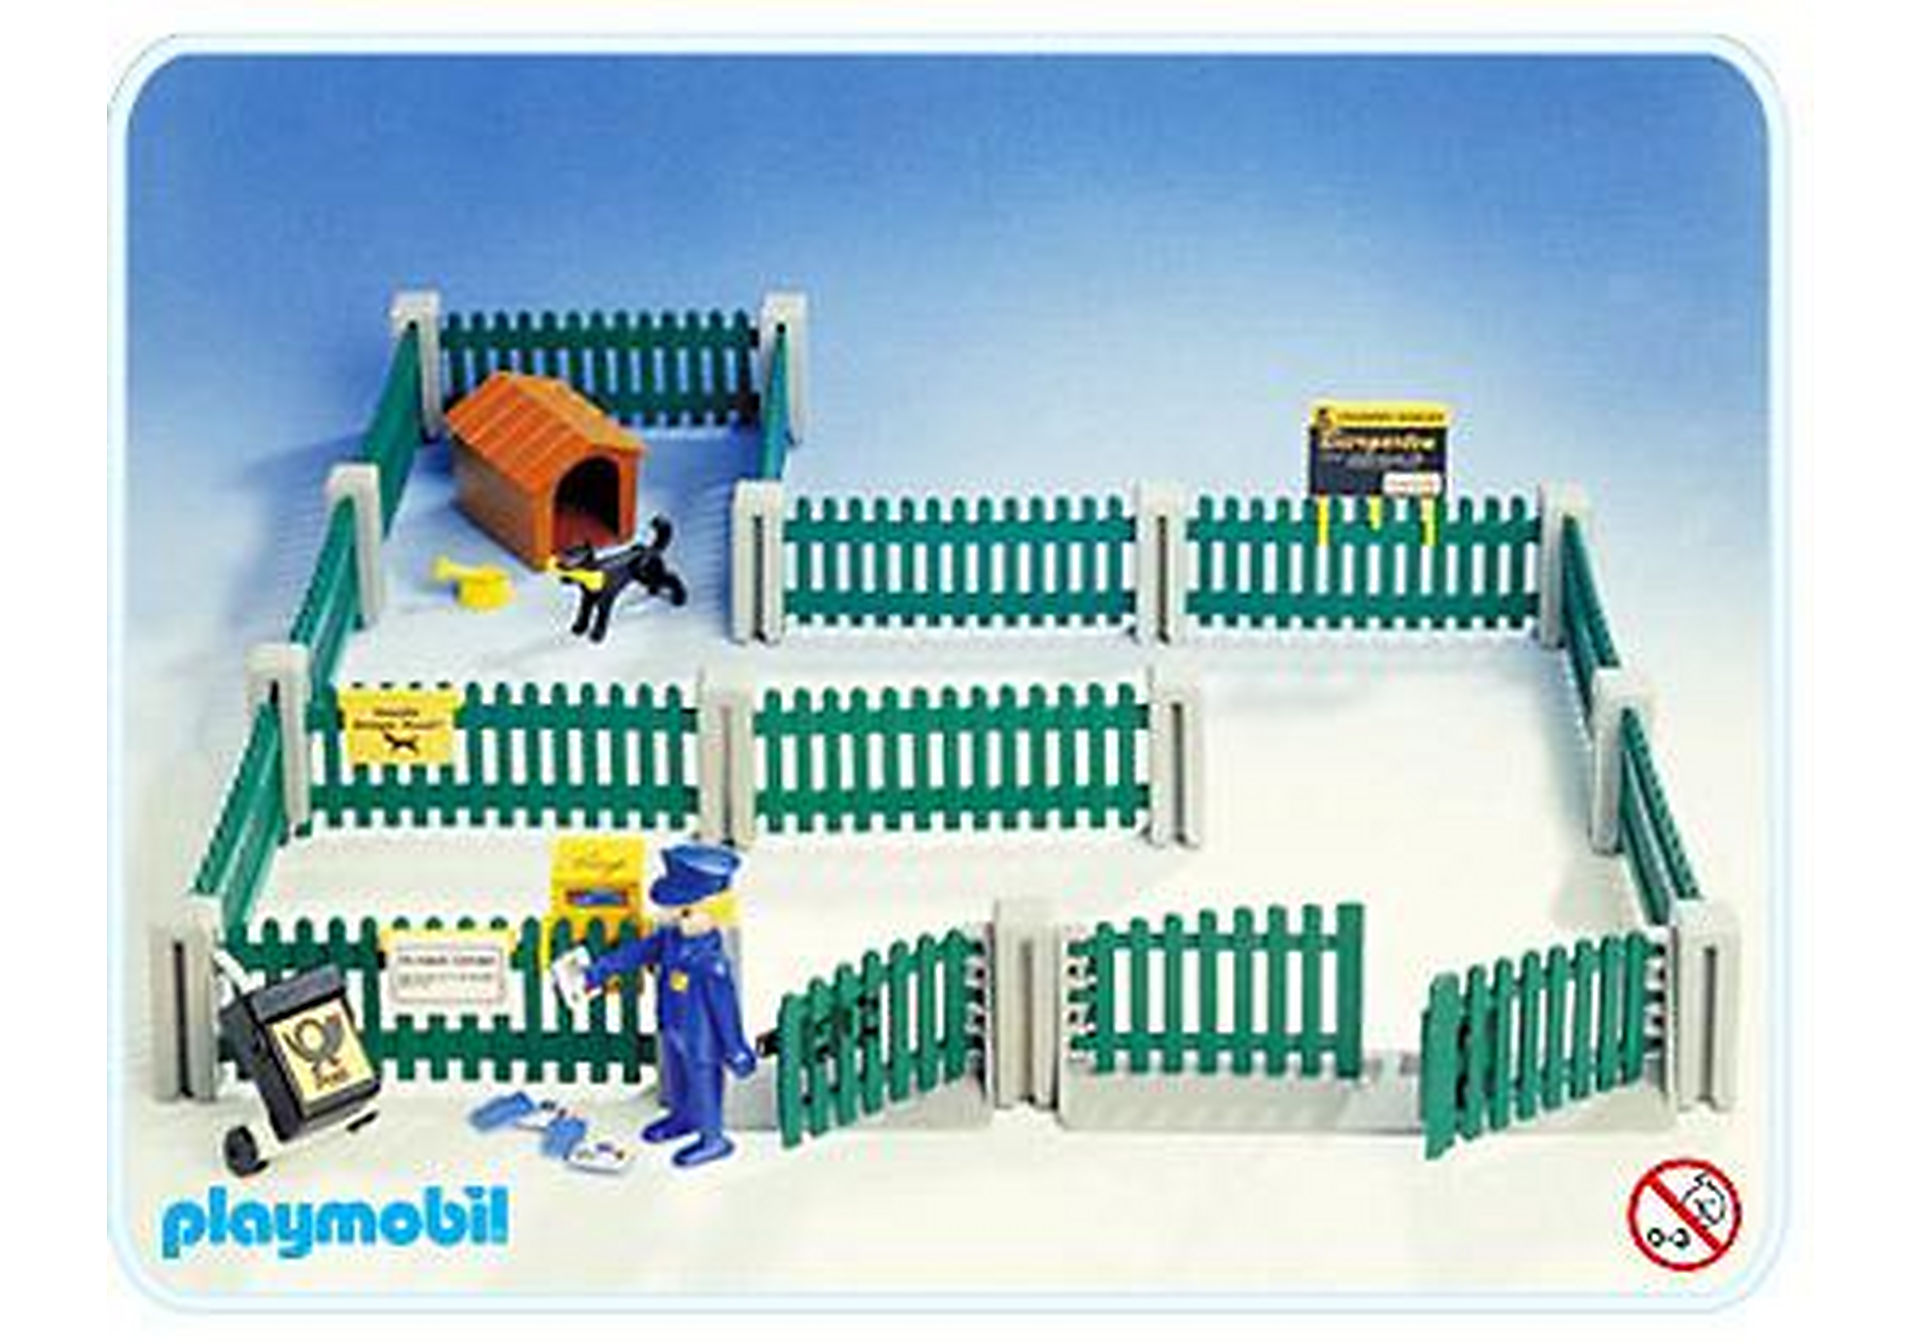 http://media.playmobil.com/i/playmobil/3504-A_product_detail/Zaun